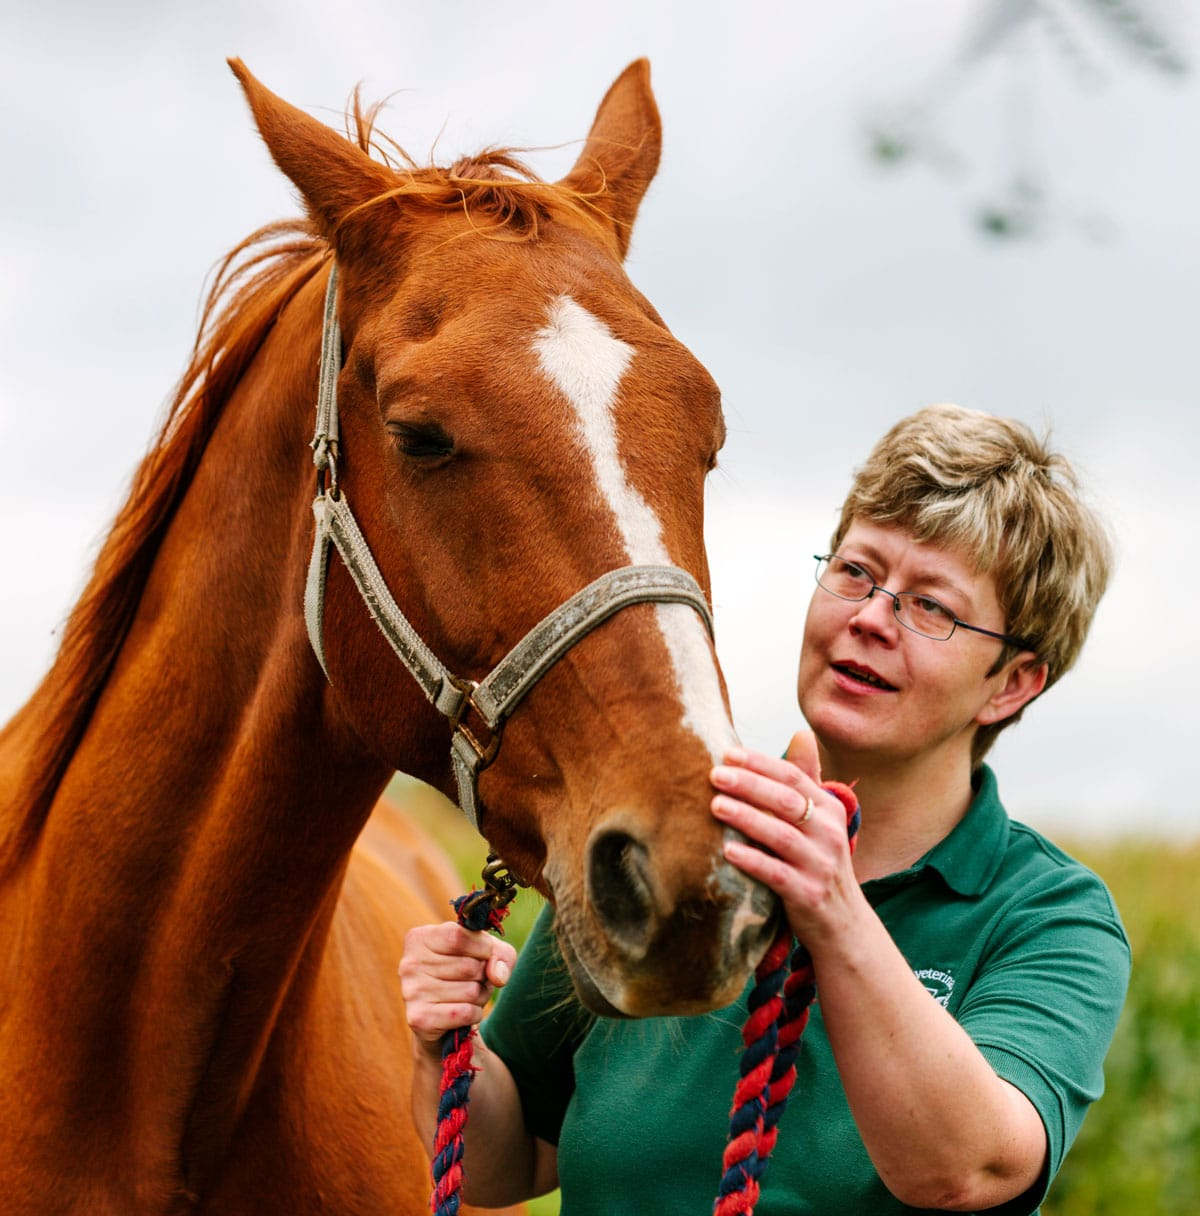 Photo of vet with horse representative of effective equine parasite control.